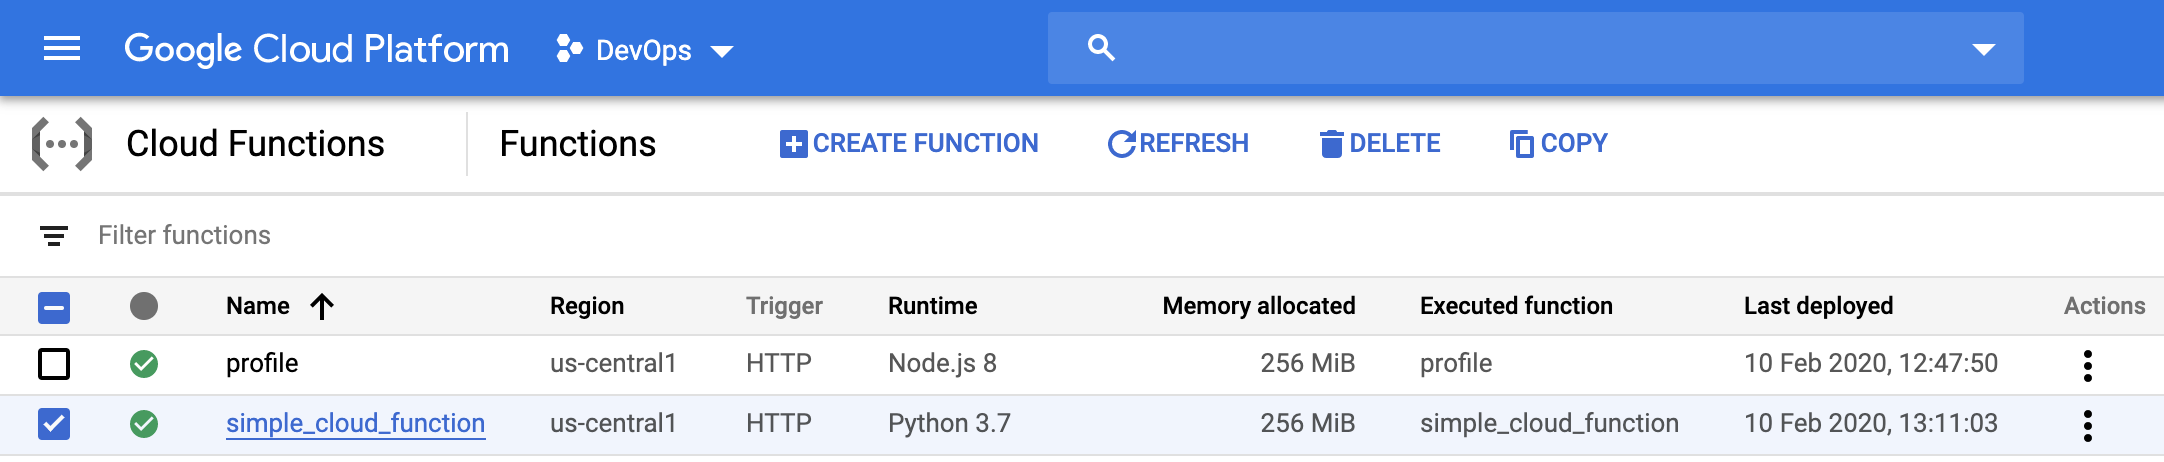 Google Cloud Console: Functions